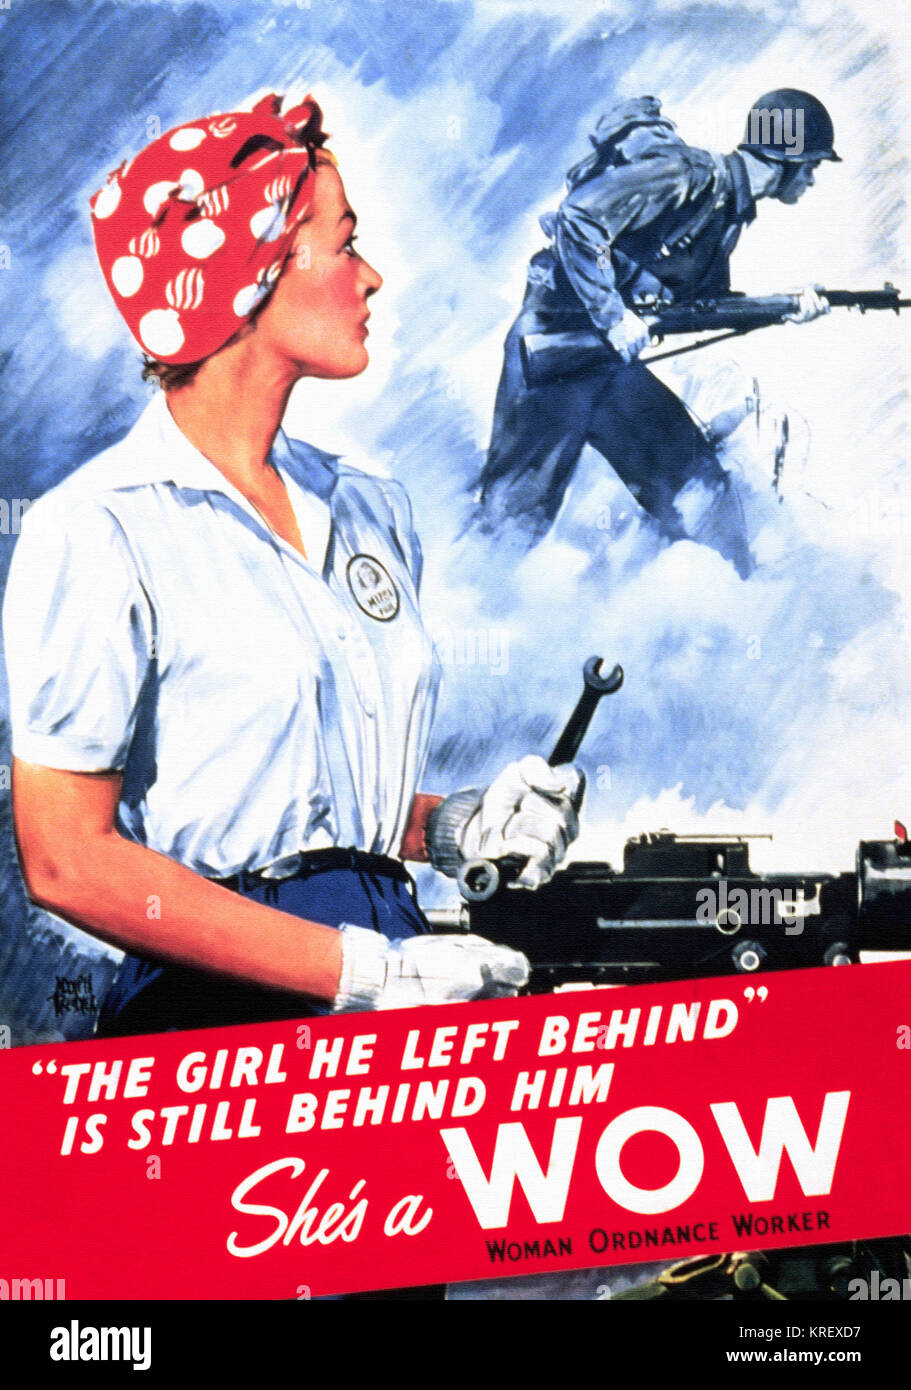 The Girl he left behind is still behind him She's a WOW woman ordnance worker - Stock Image